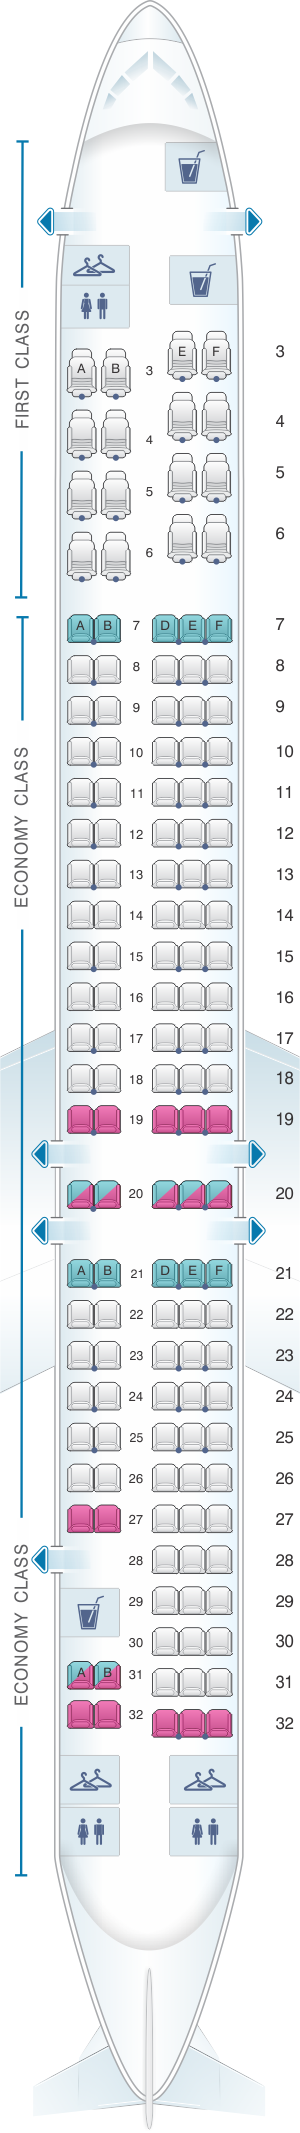 Seat map for American Airlines McDonnell Douglas MD 80